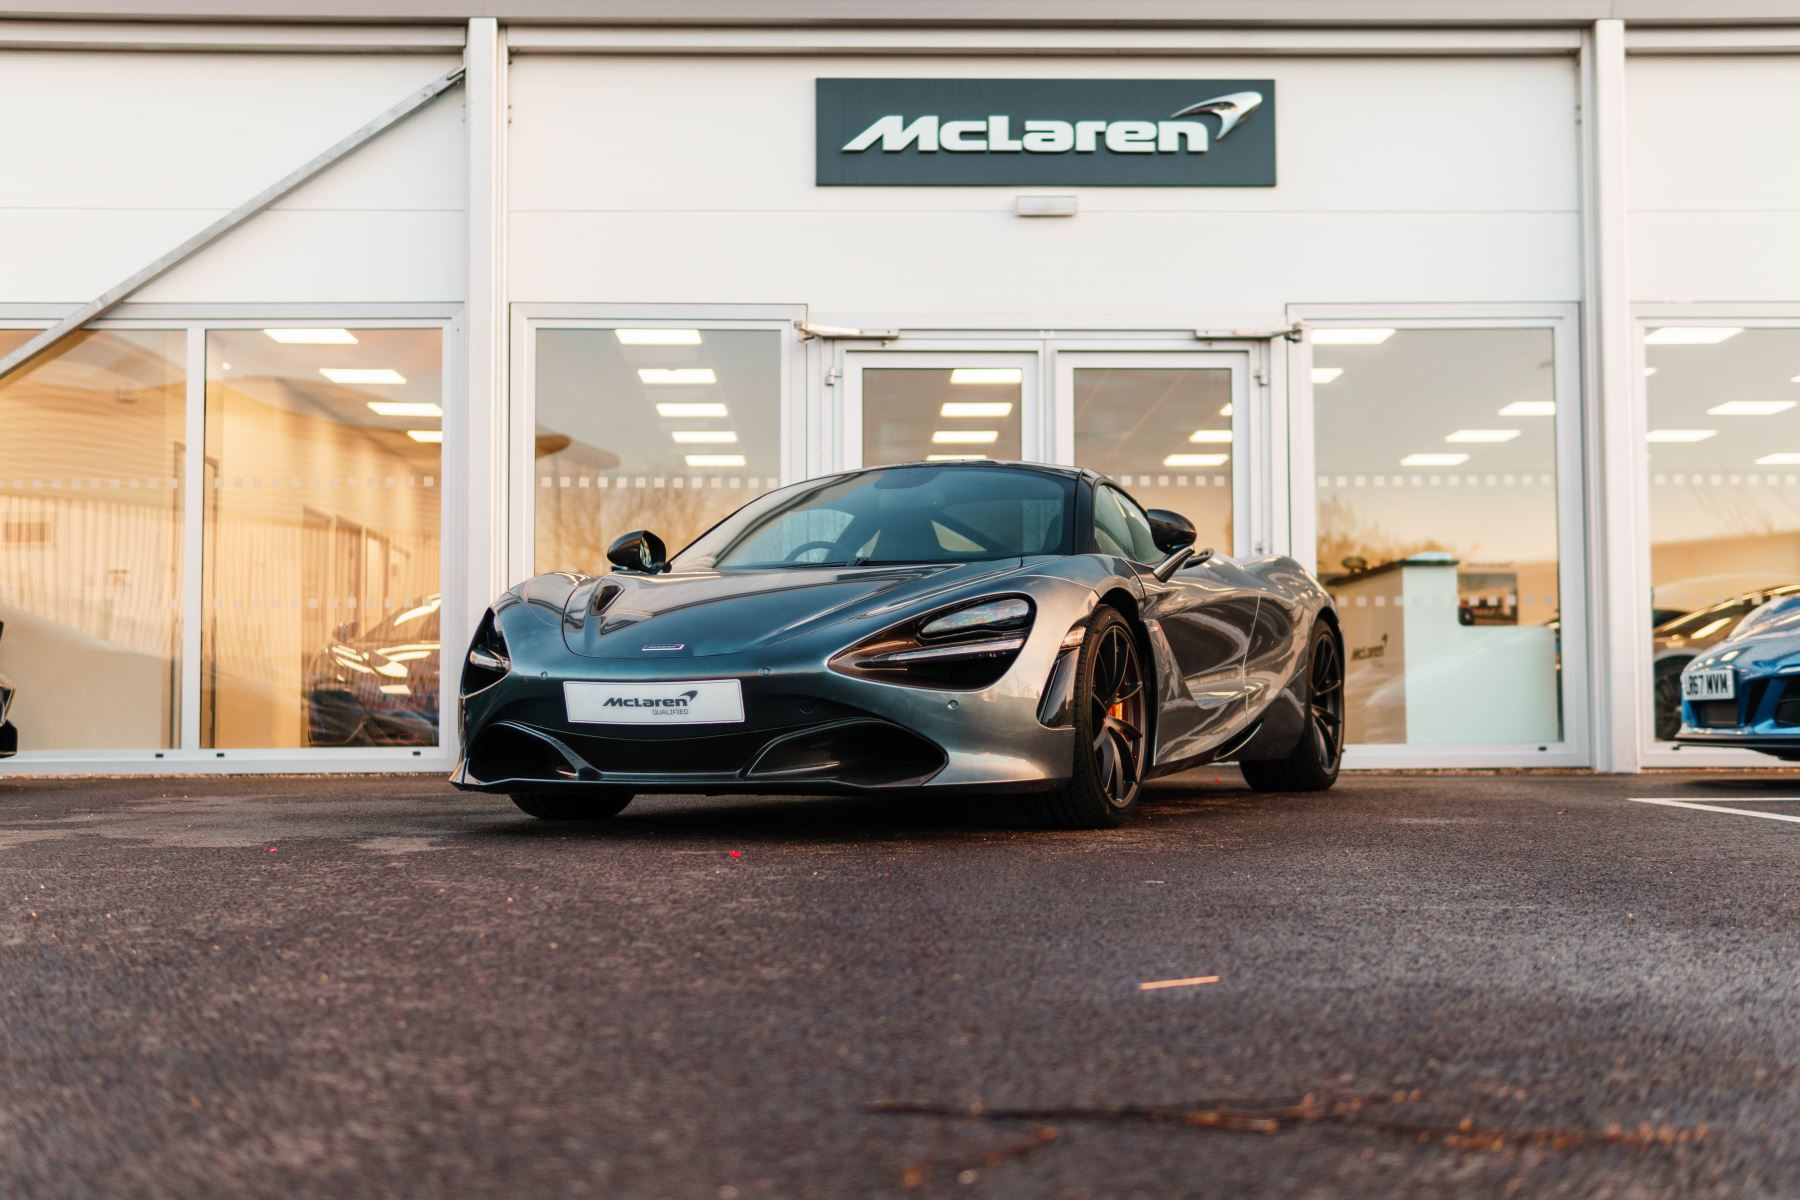 McLaren 720S Performance Coupe  4.0 Semi-Automatic 2 door (2018) image